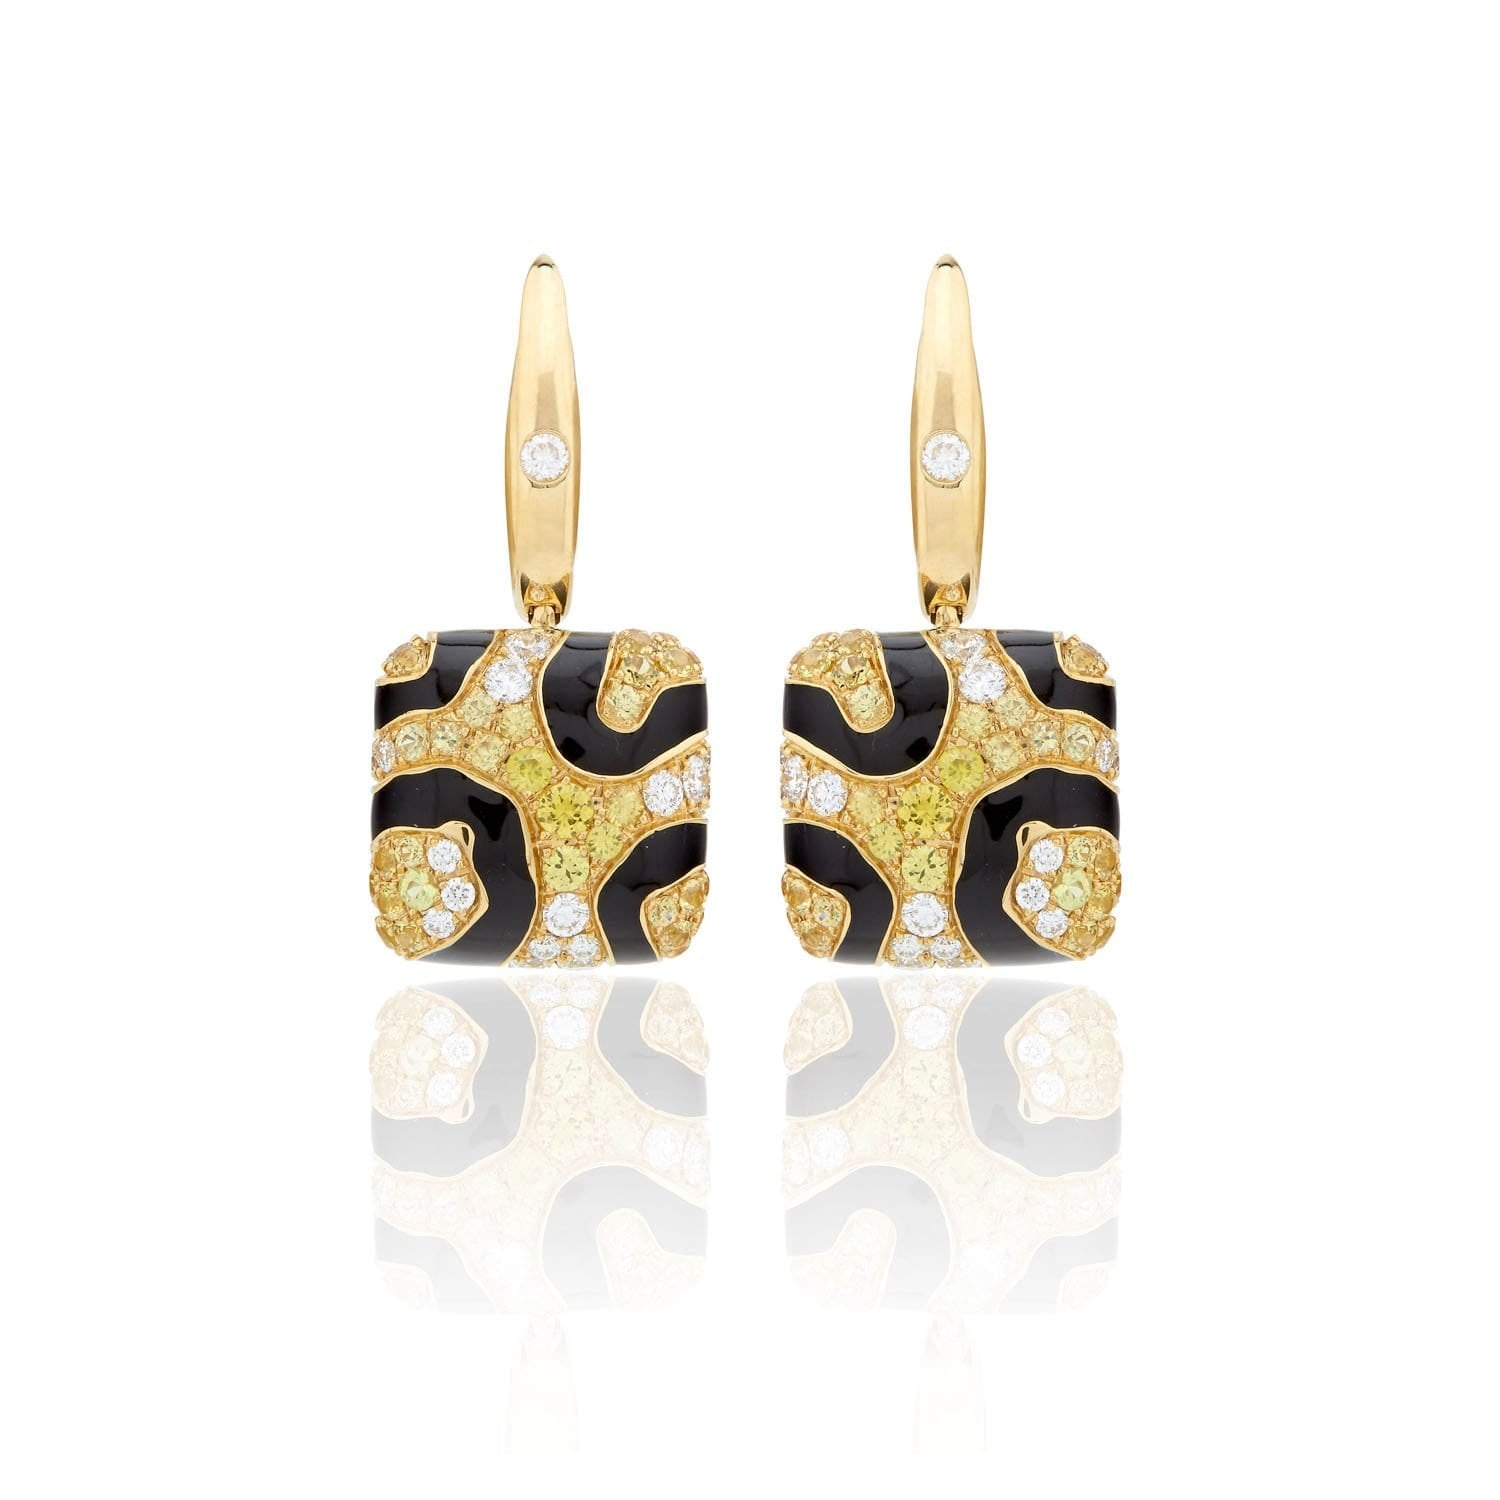 WILD LIFE SKIN LEOPARD Earrings - STENZHORN JEWELLERY